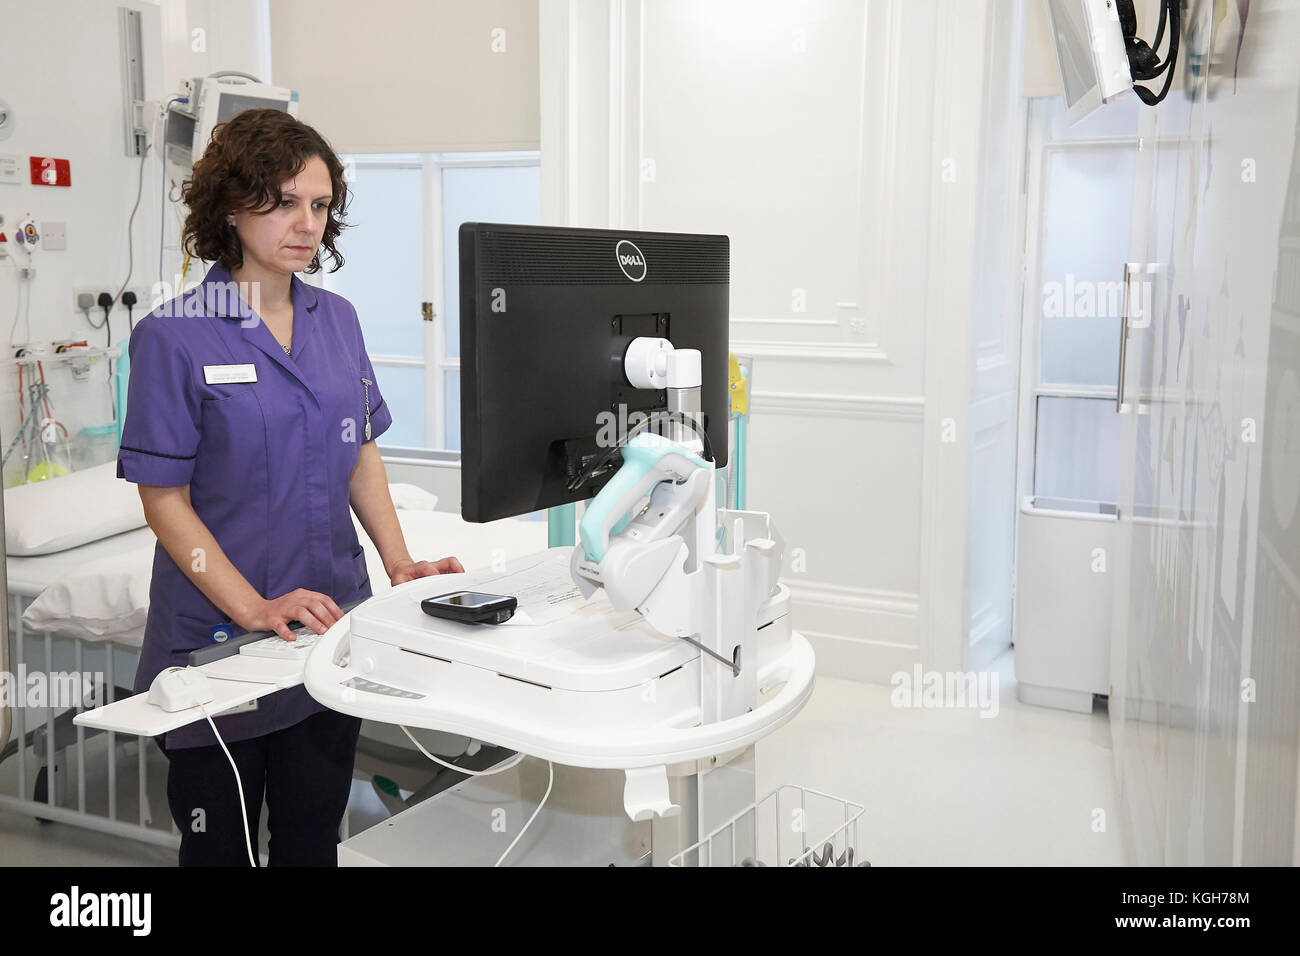 A Nurse checking information on a computer in a hospital. - Stock Image